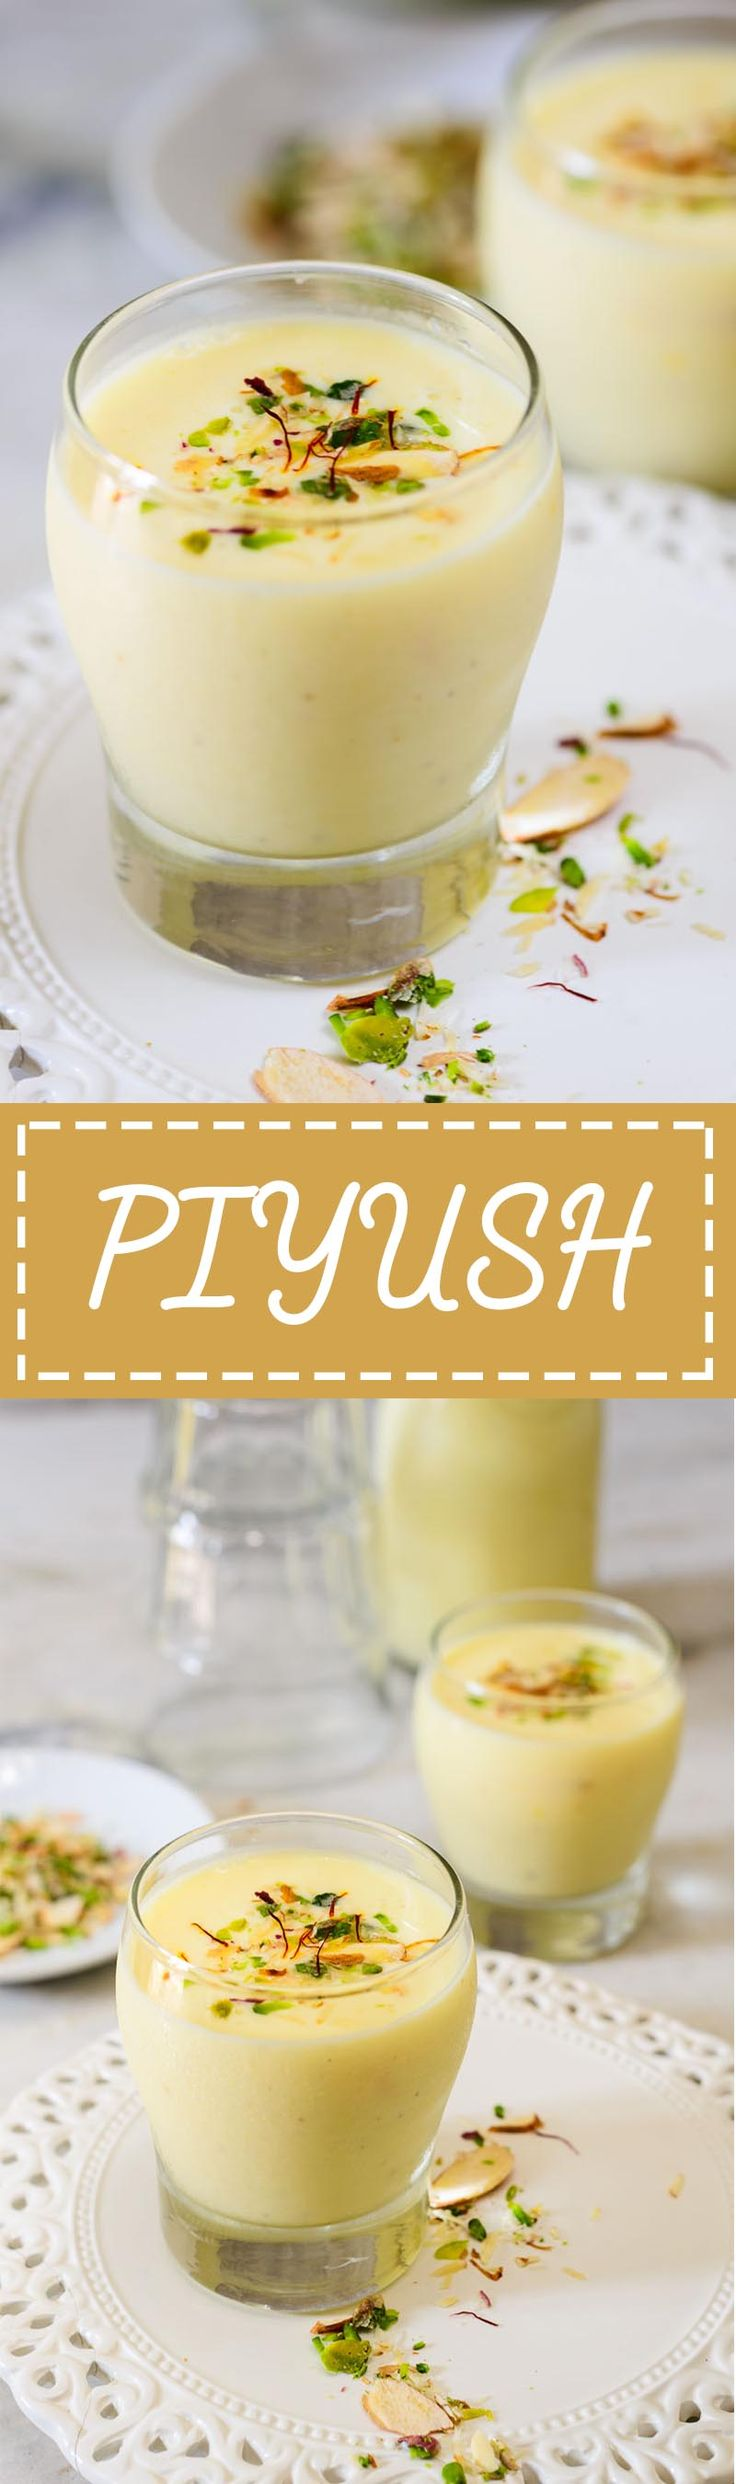 Piyush is a creamy smooth beverage made with shrikhand, popular in Maharashtrian and Gujarati cuisine. Read its recipe, hurry!